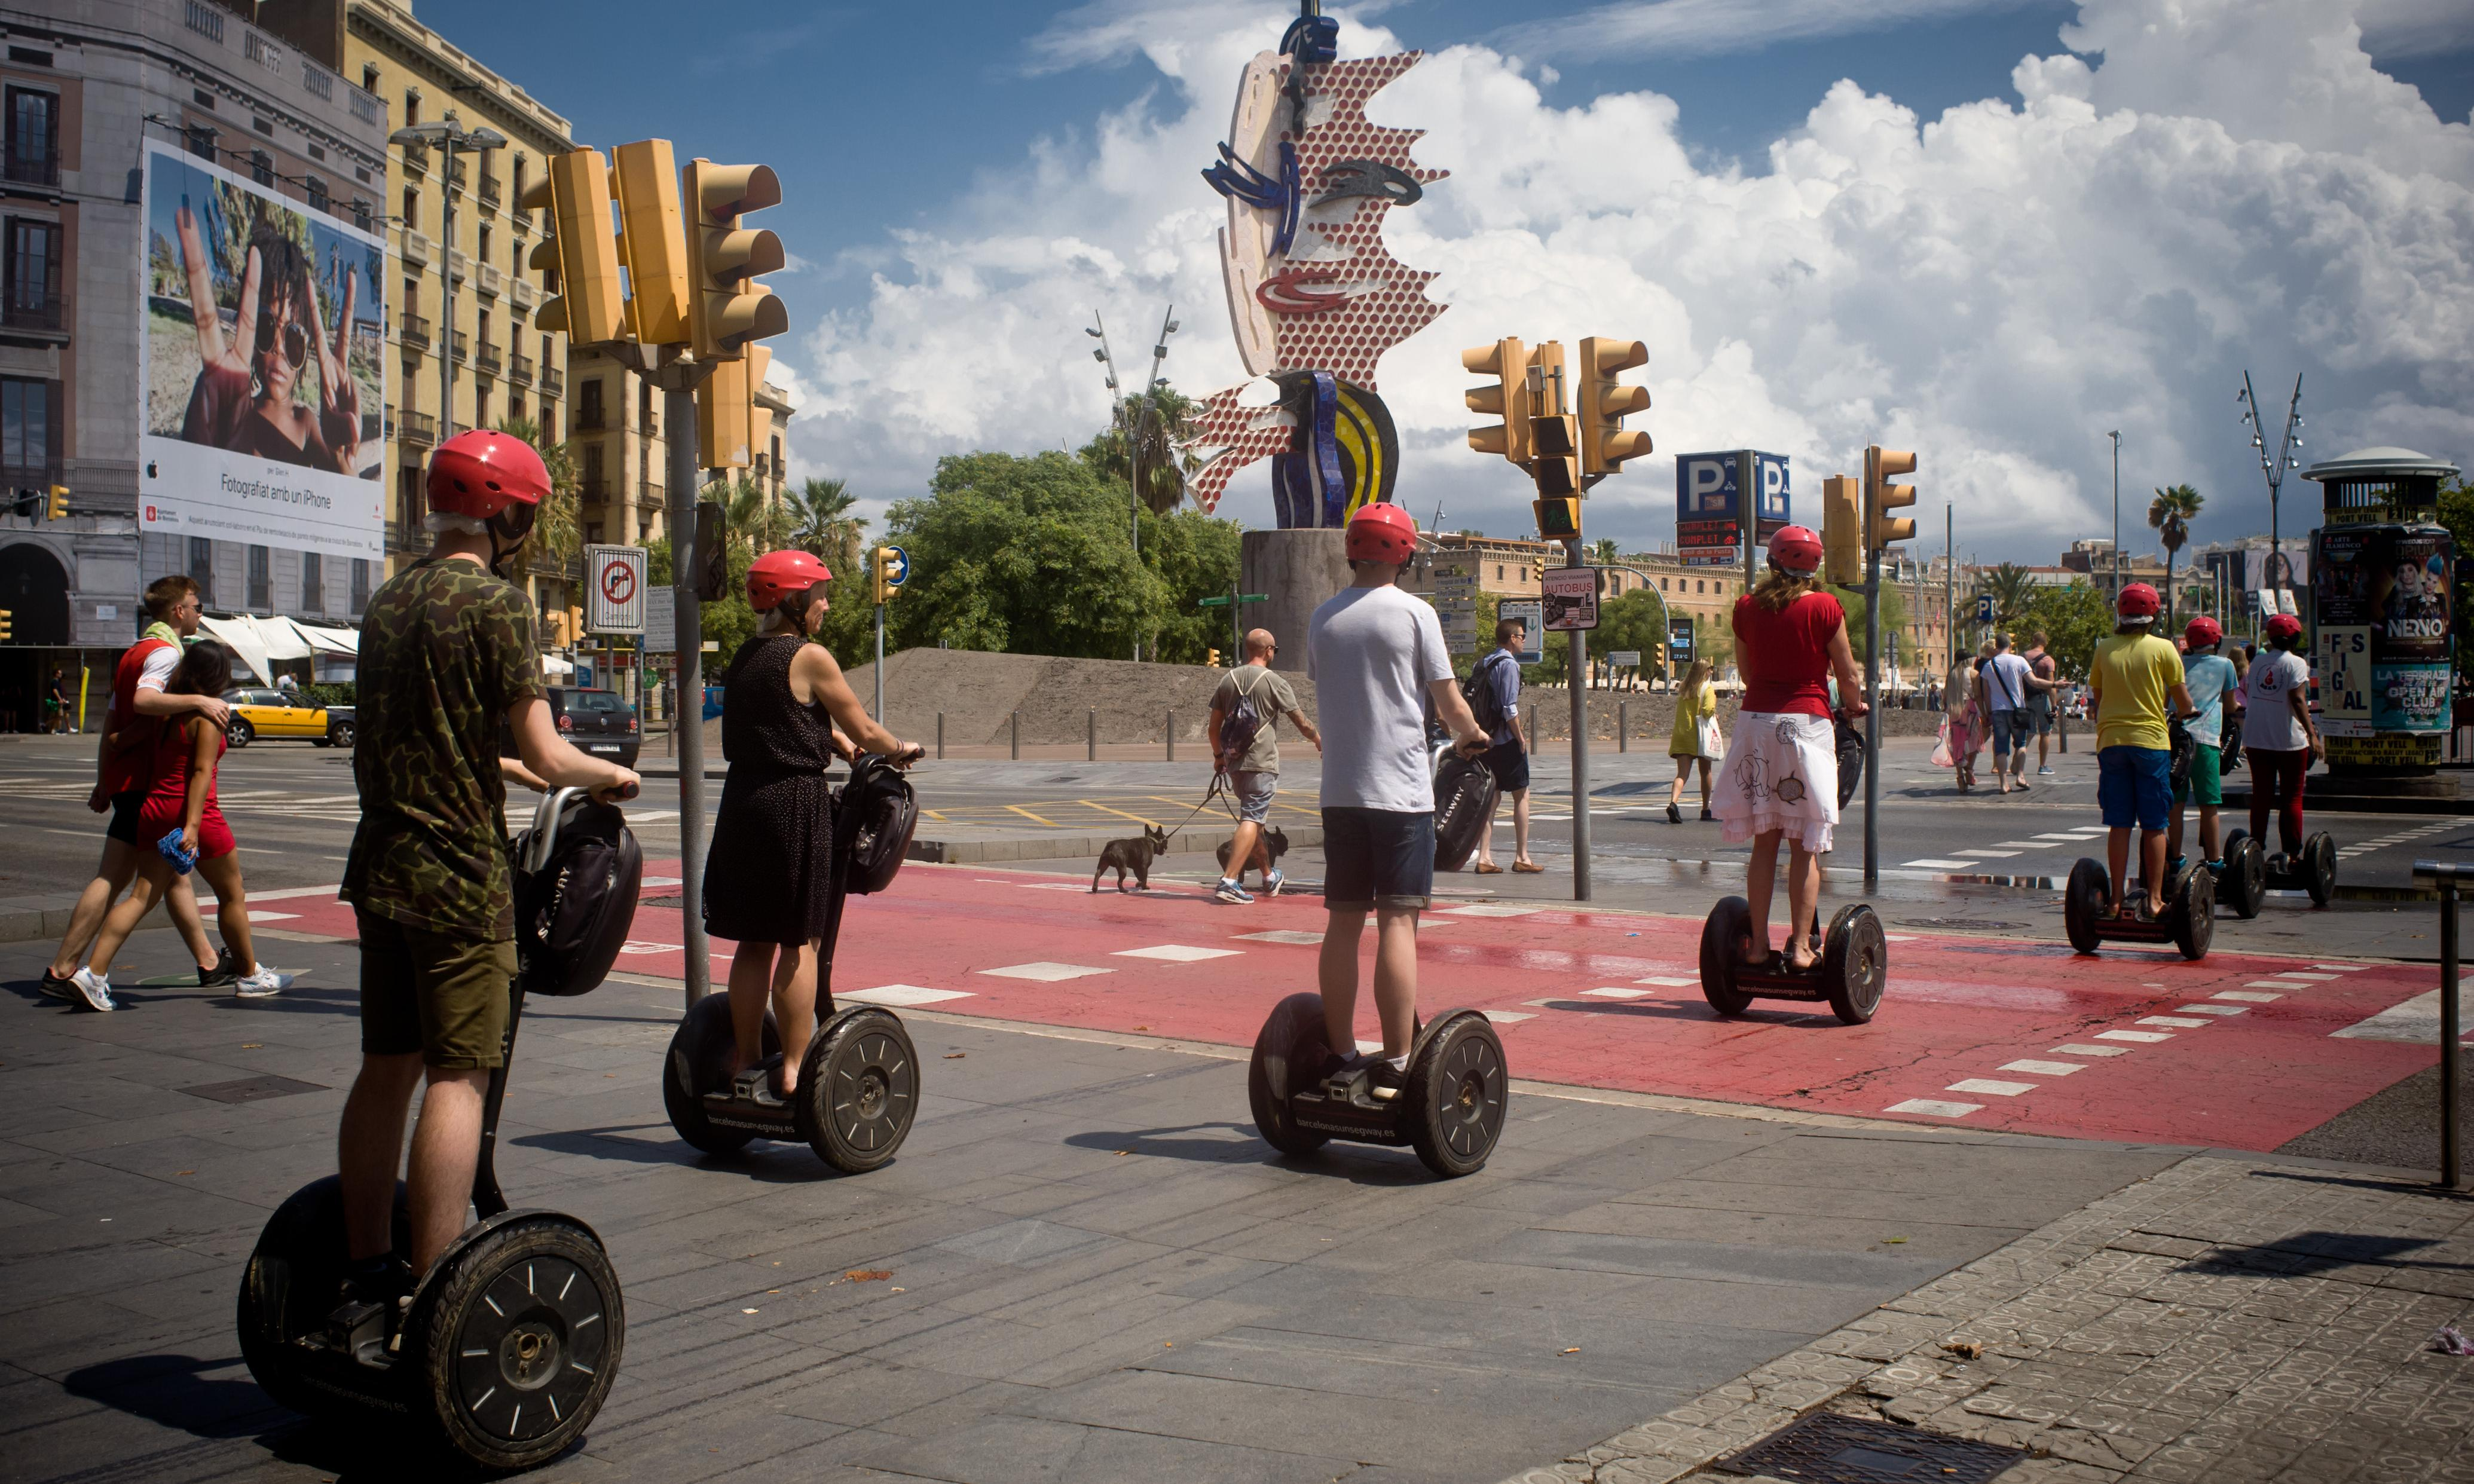 Barcelona adds Segway ban to curbs on tourism